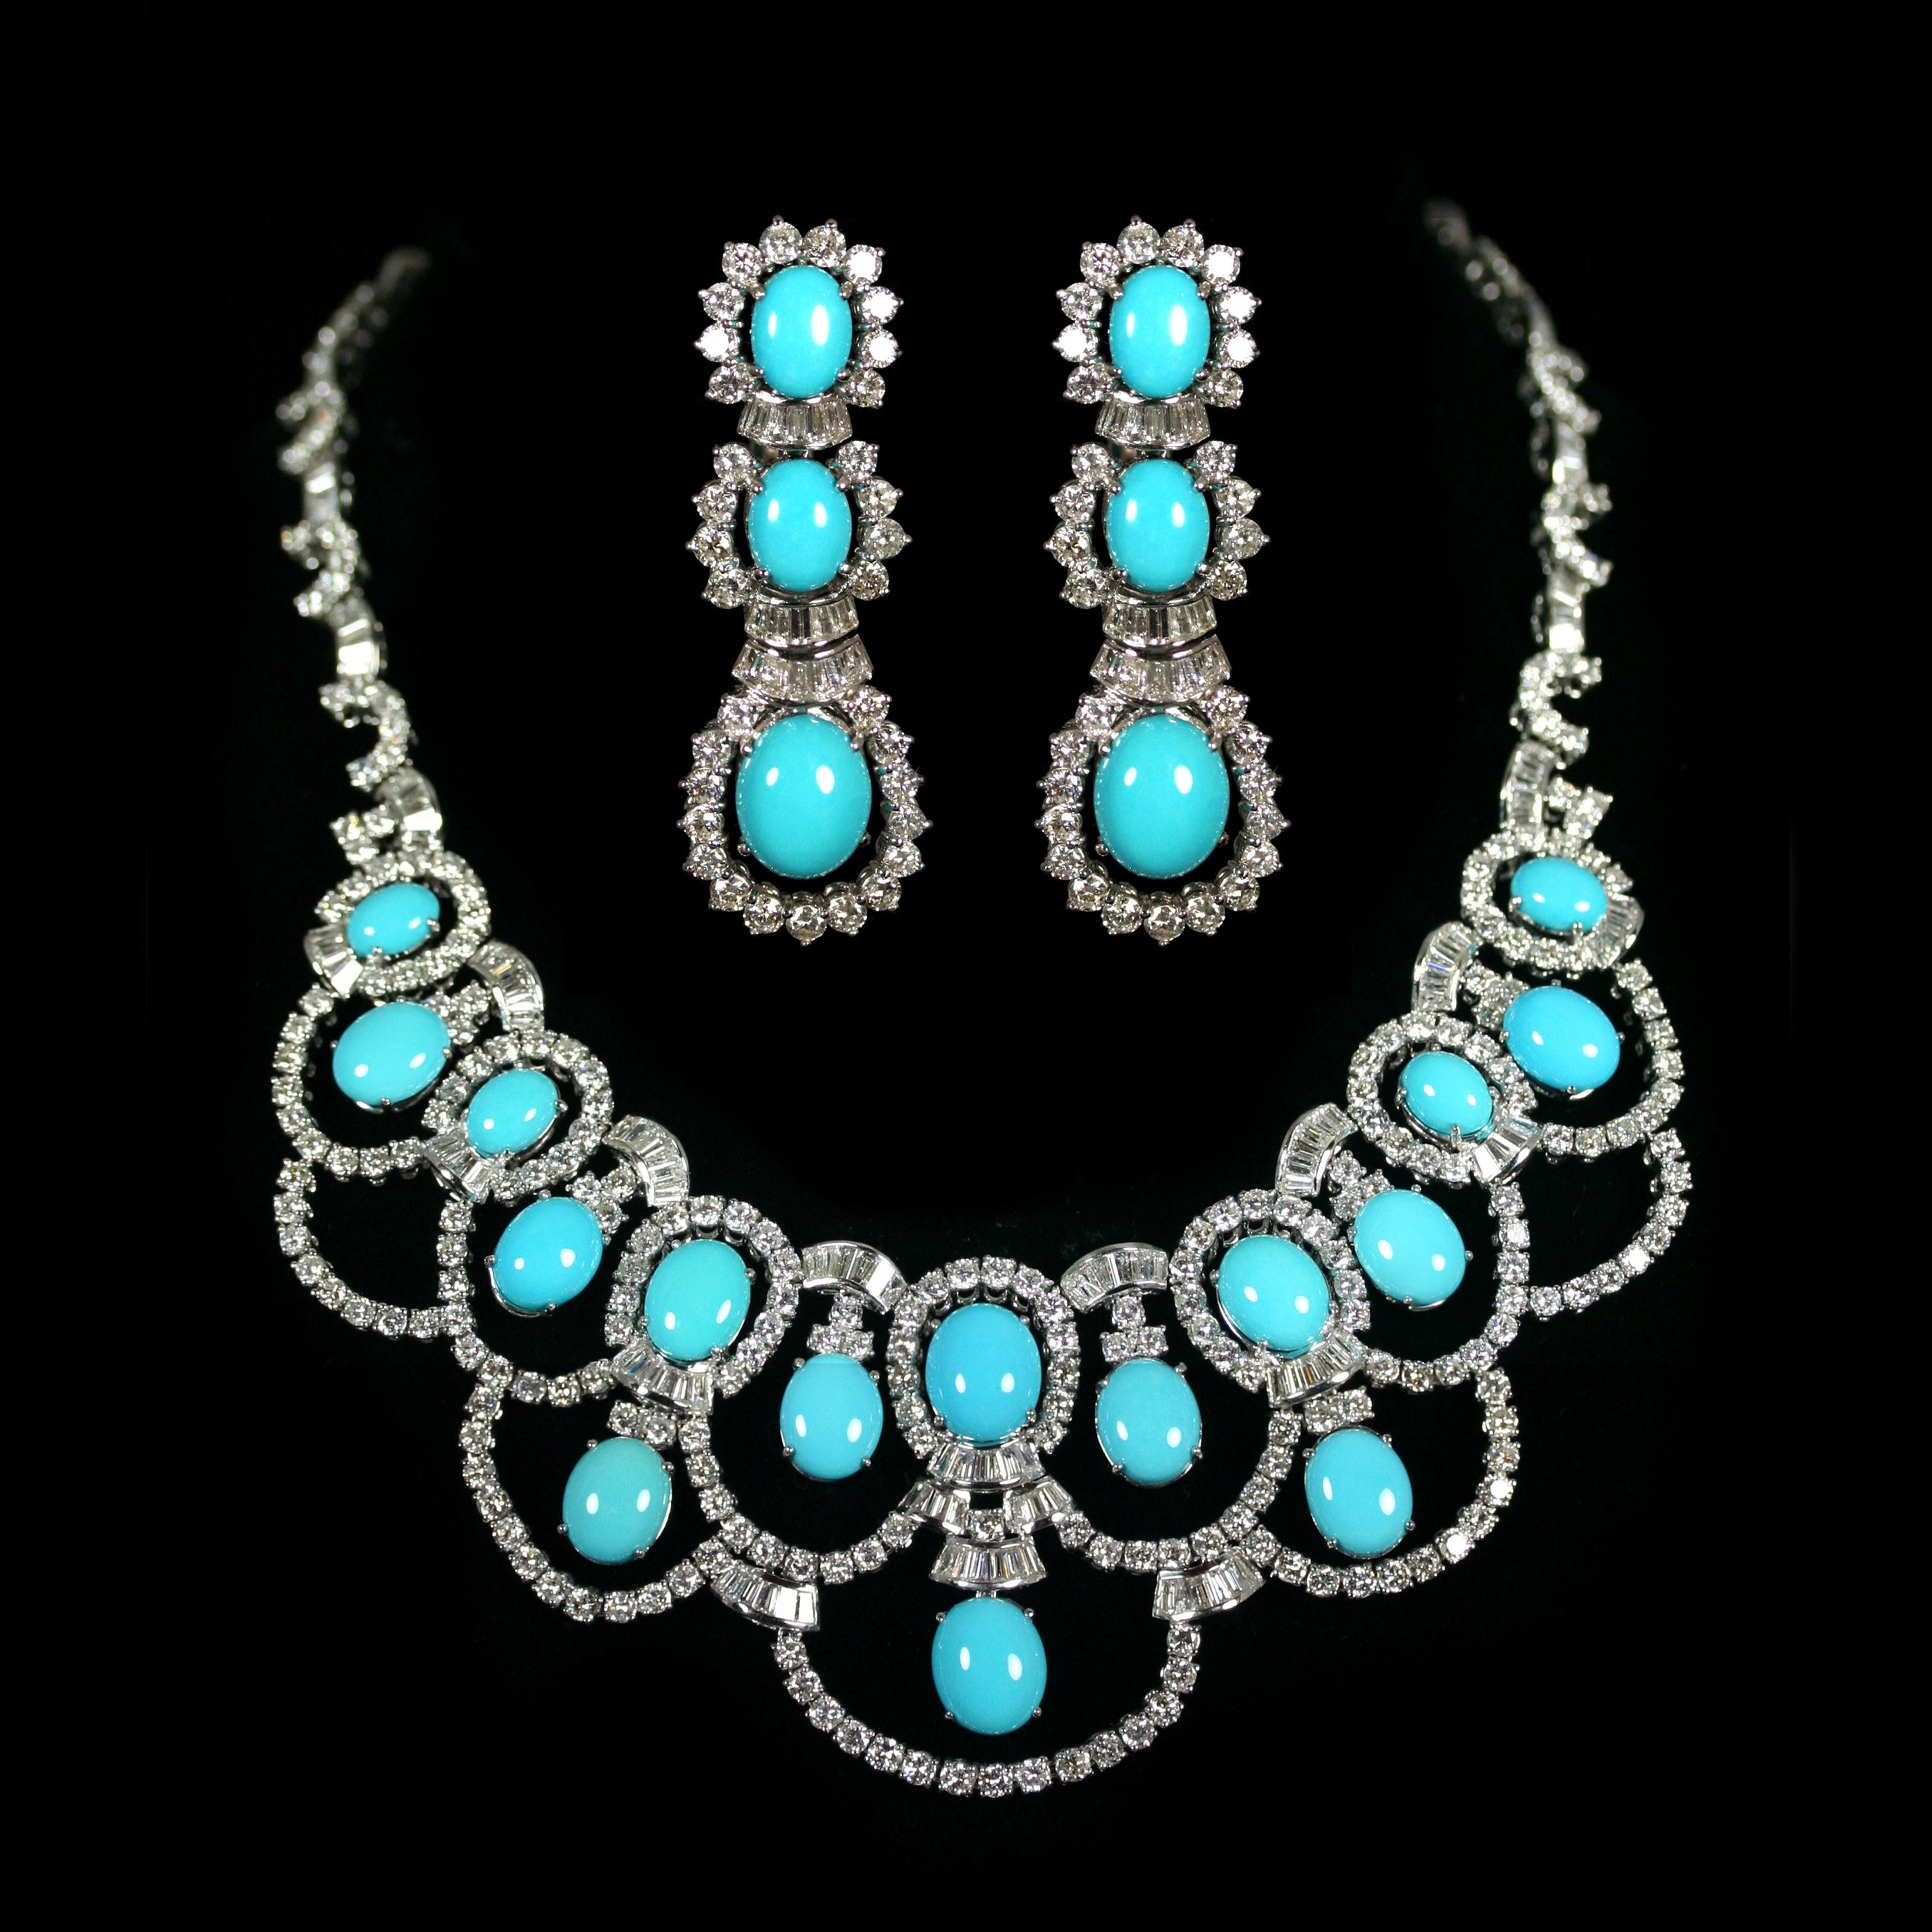 Turquoise Diamond Earrings And Necklace Set Accompanied By A Combined Total Of 26 97 Carats Diamonds In White Gold